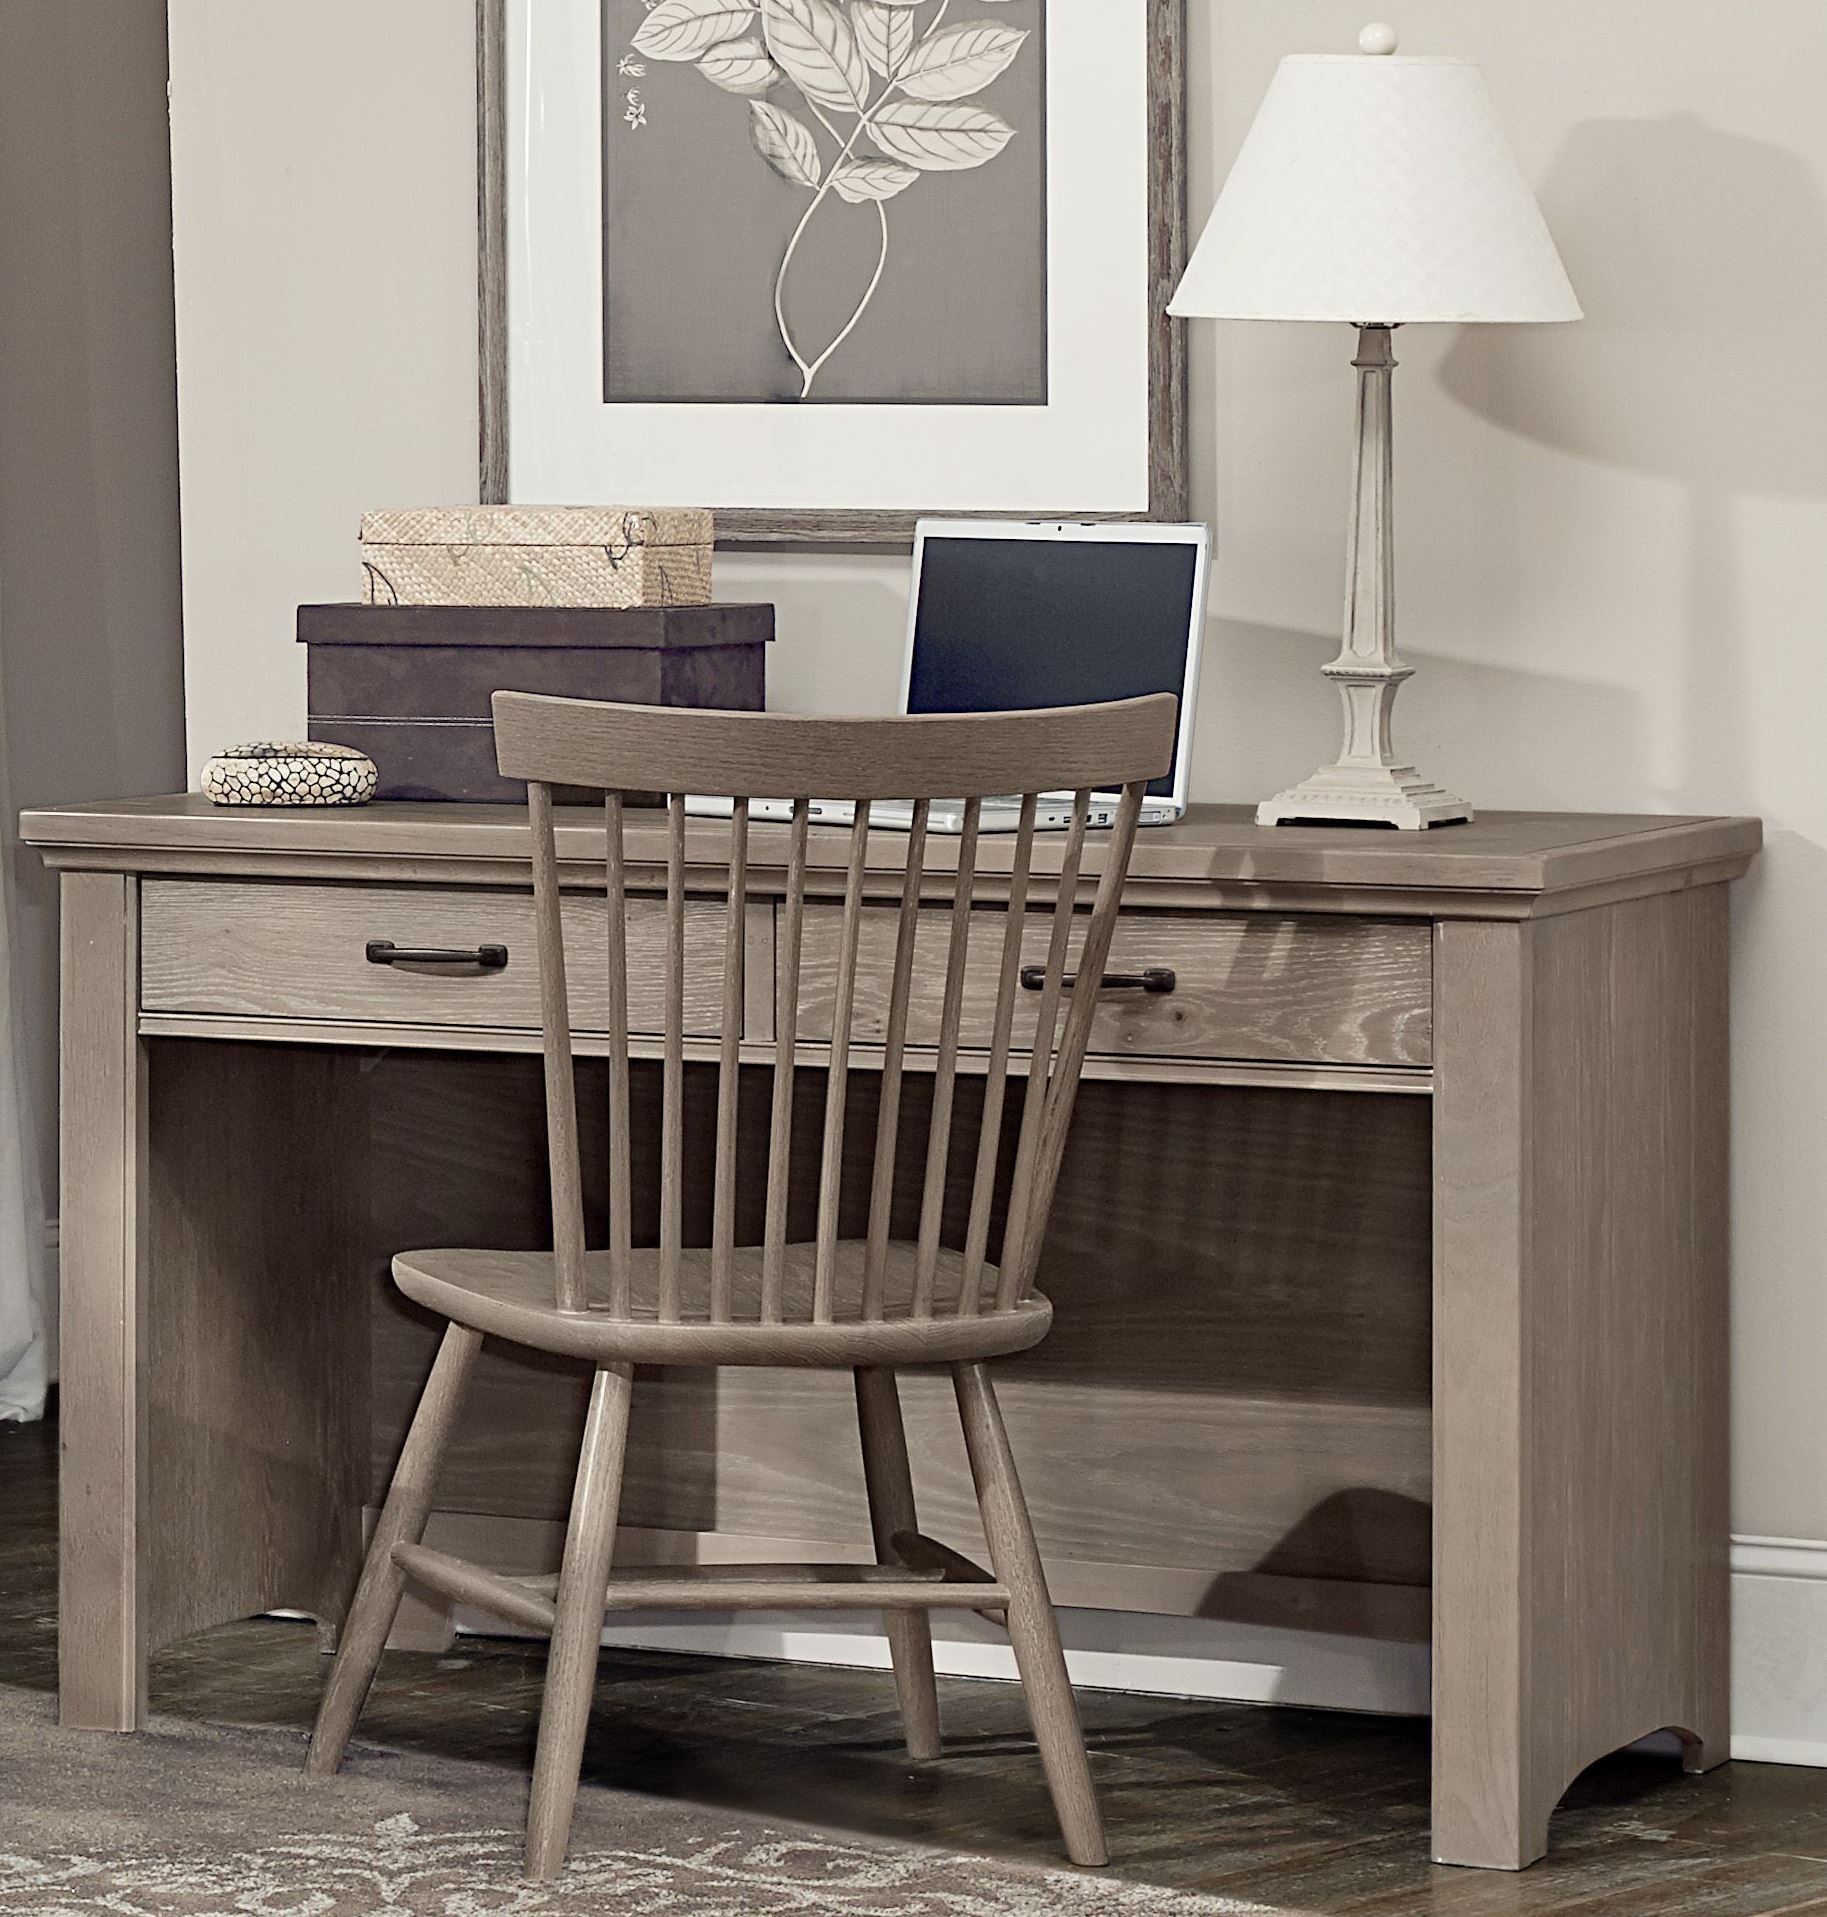 Transitions Driftwood Oak 2 Drawer Laptop Desk from